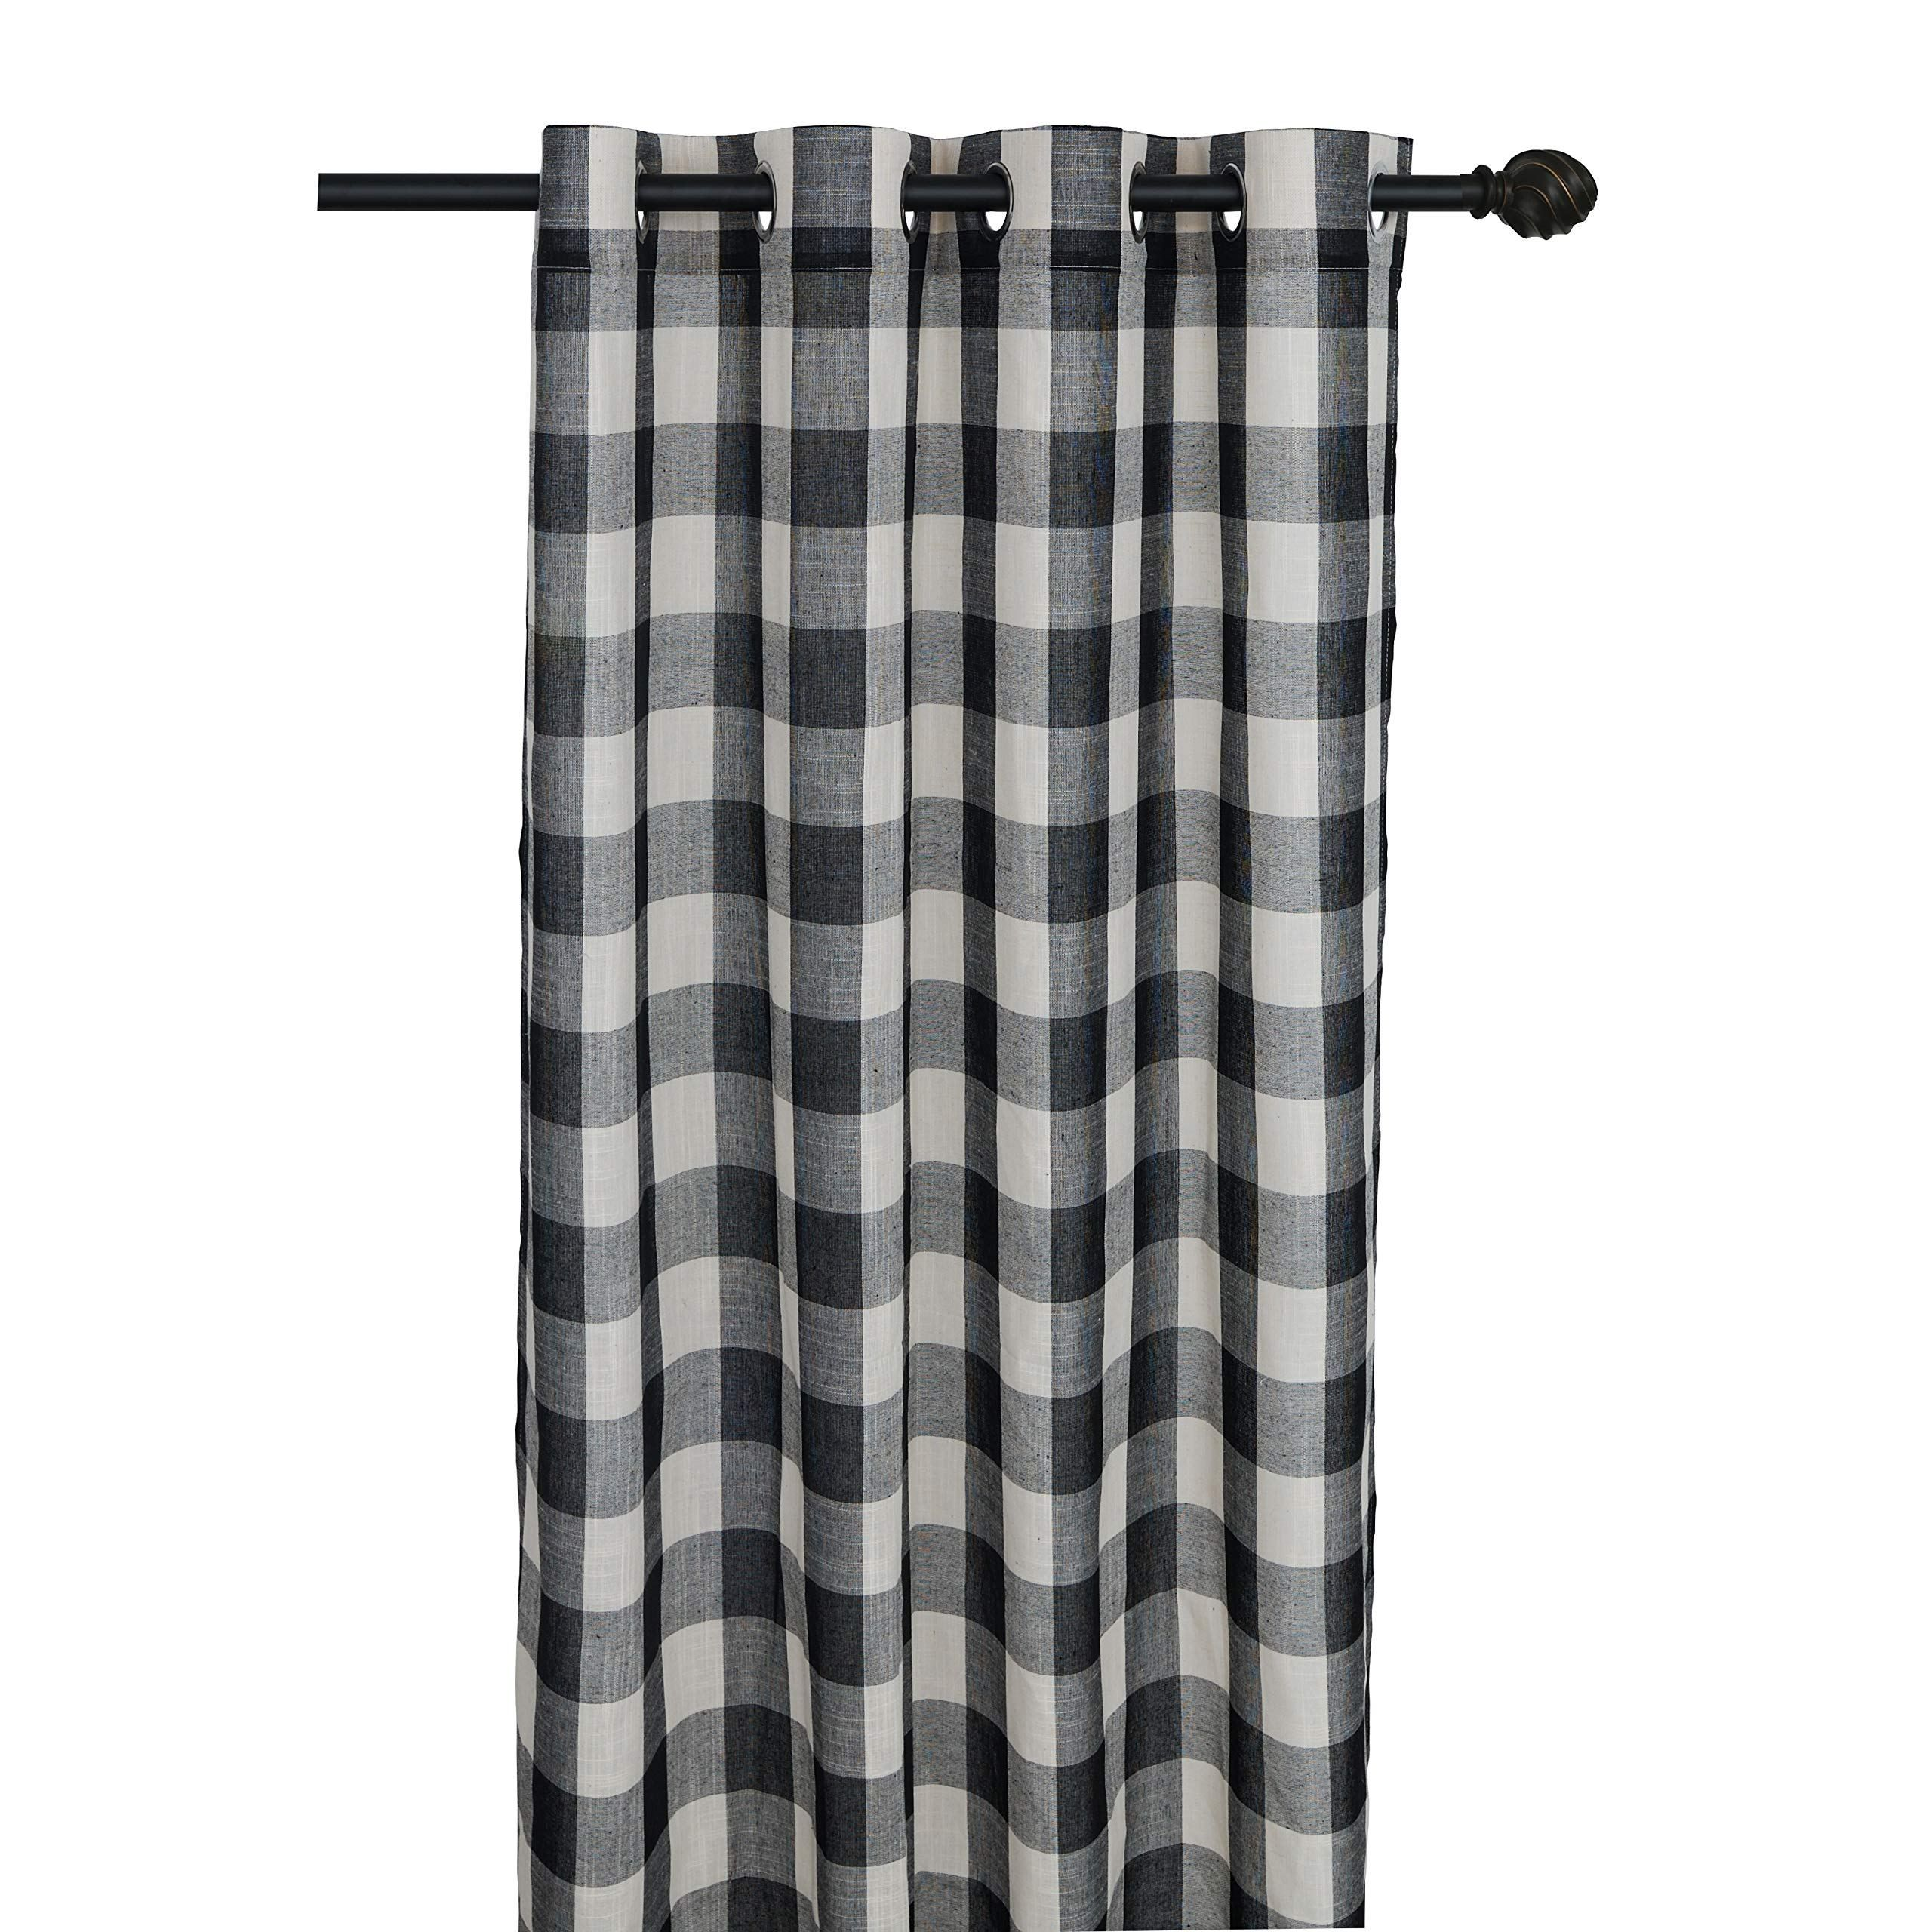 Creativesfun Buffalo Check Grommet Window Curtain Black White